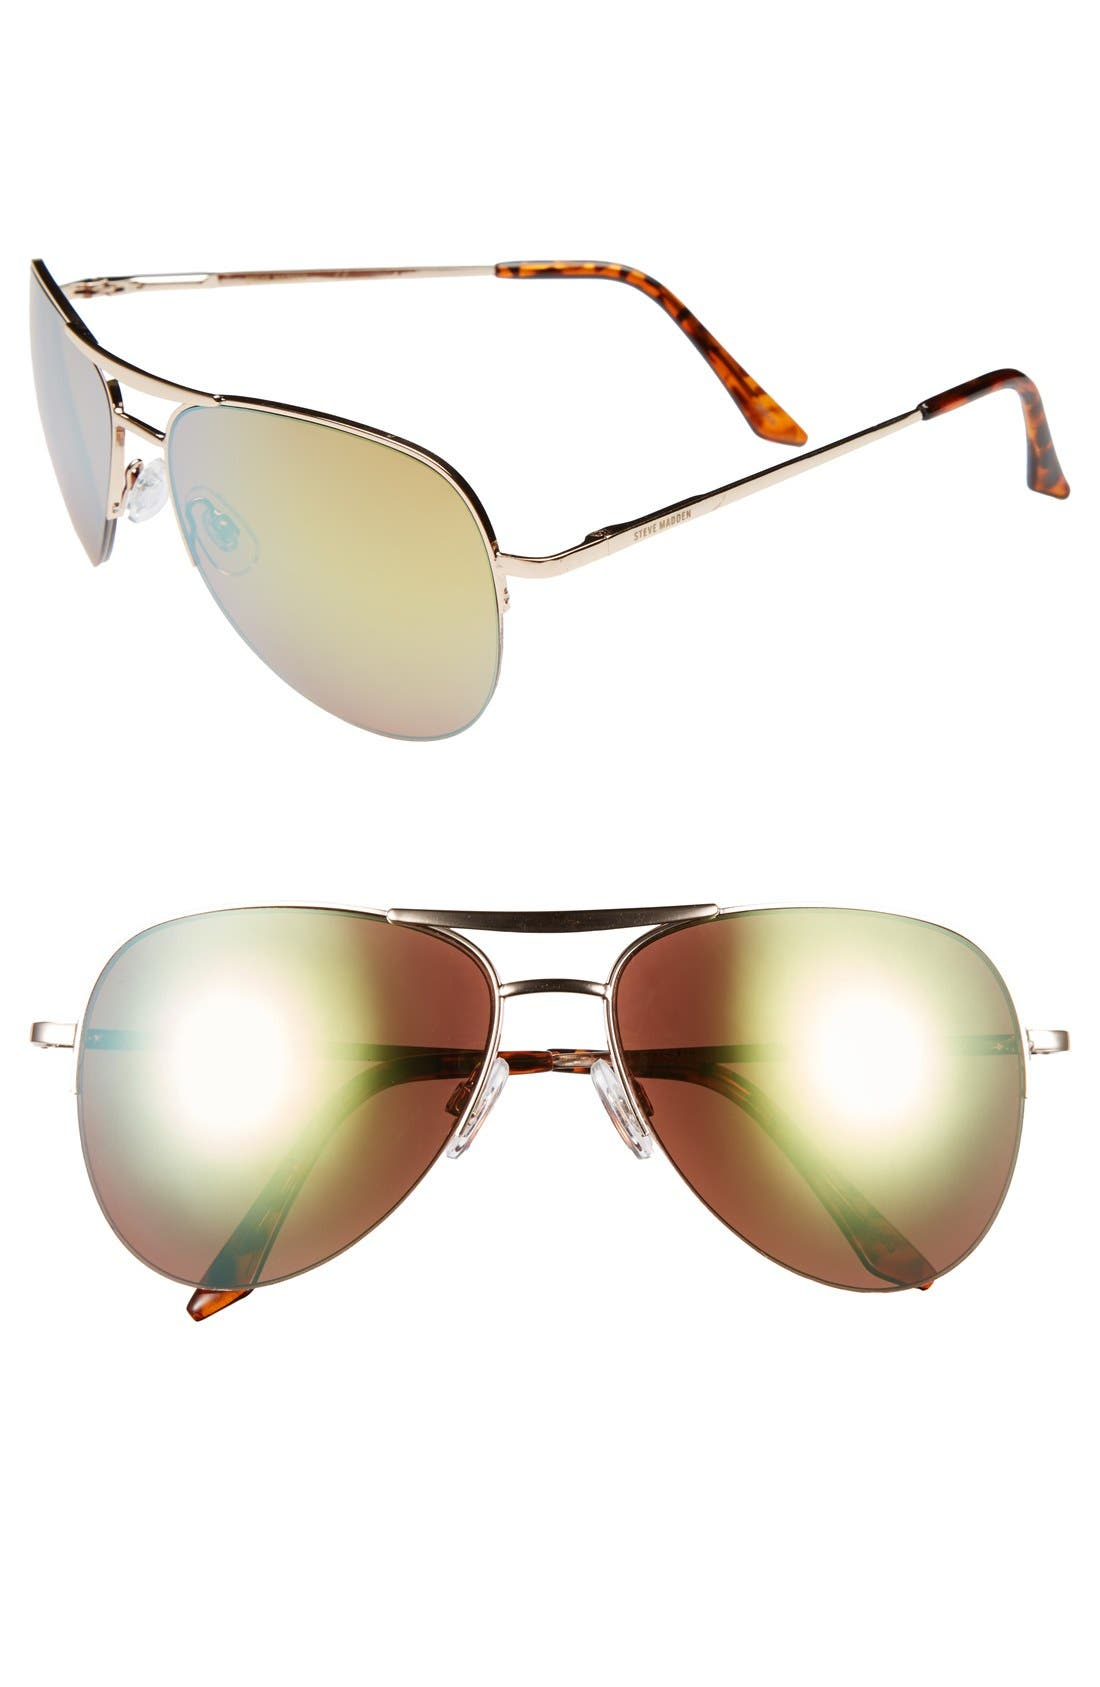 Main Image - Steve Madden Semi Rimless 55mm Aviator Sunglasses